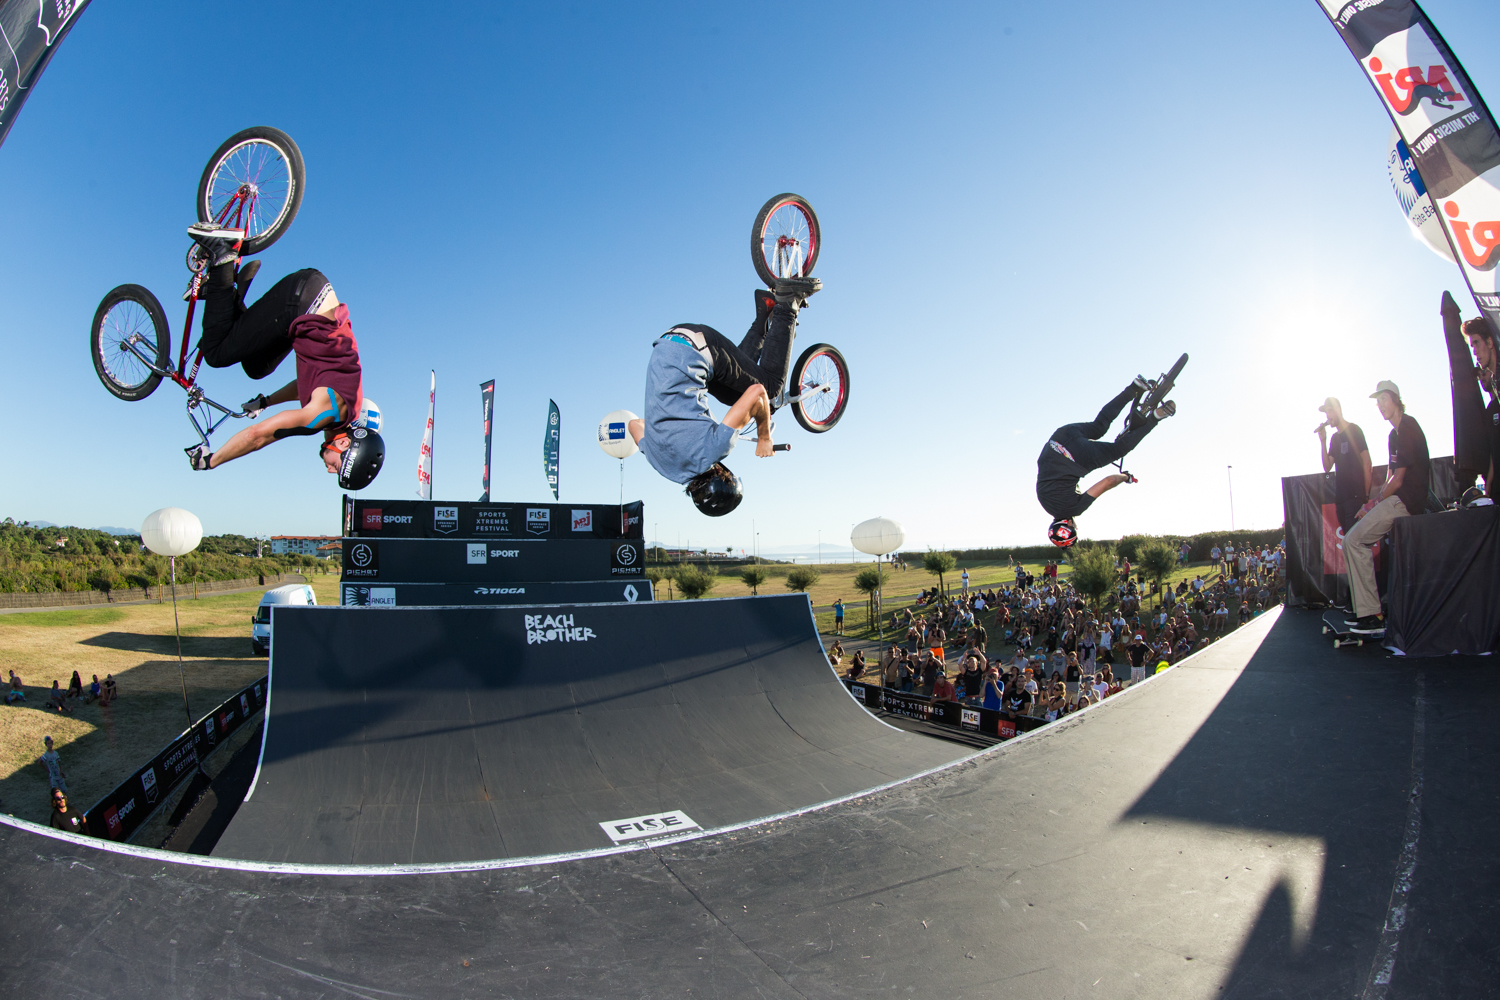 Riders pendant l'Anglet Park Session (FISE) ©cedricderodot-2017